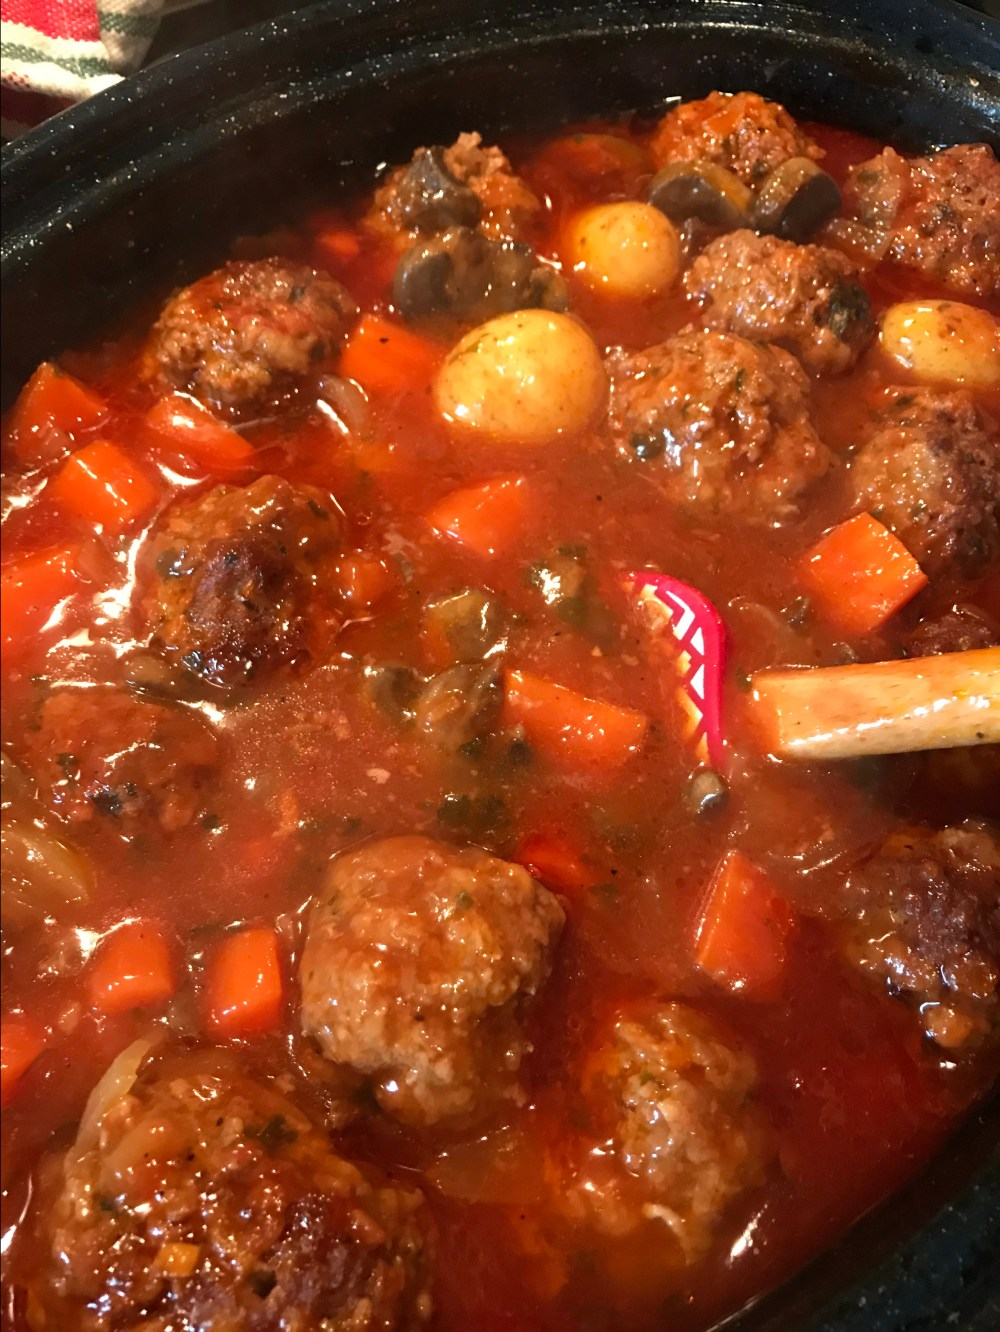 The slurry of corn starch helps thicken the gravy of the Meatball Pot Roast